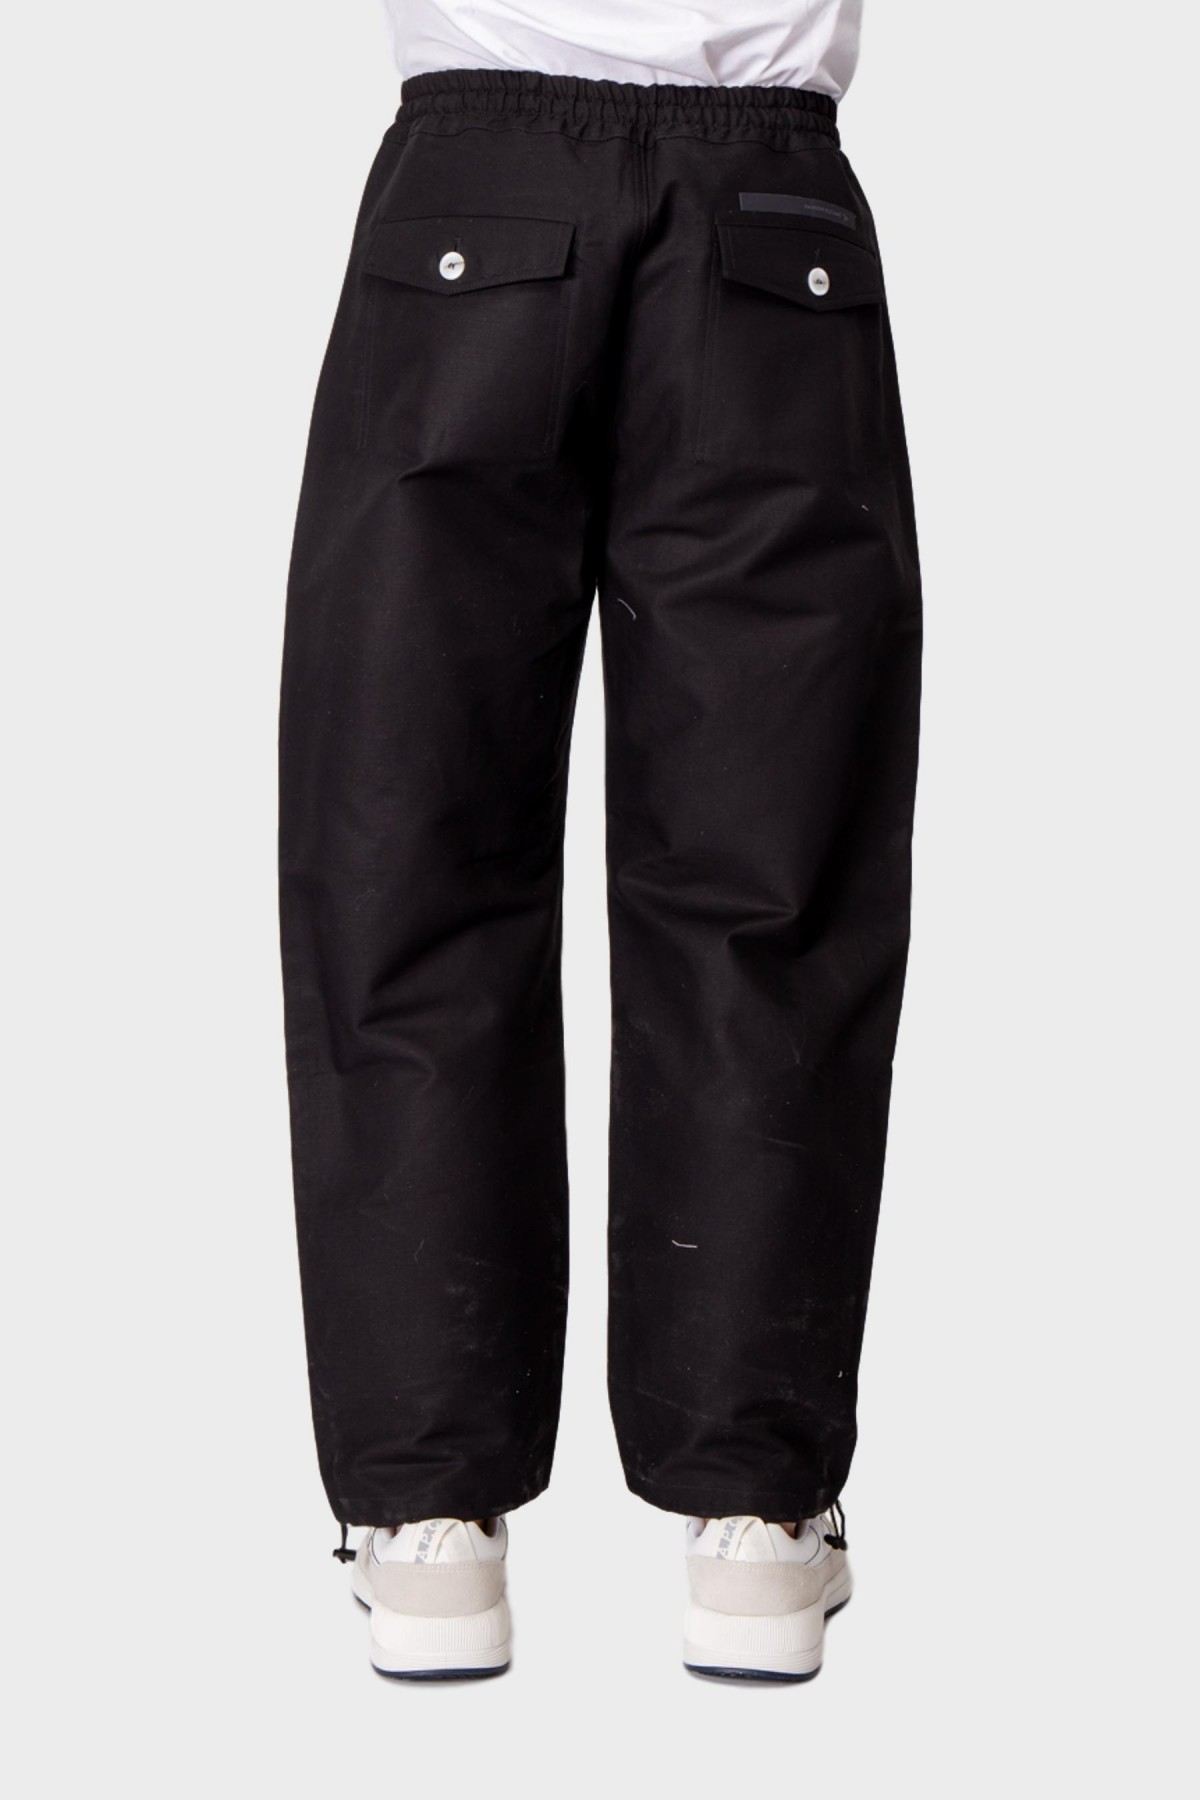 Maison Kitsuné Elasticated Pants in Black